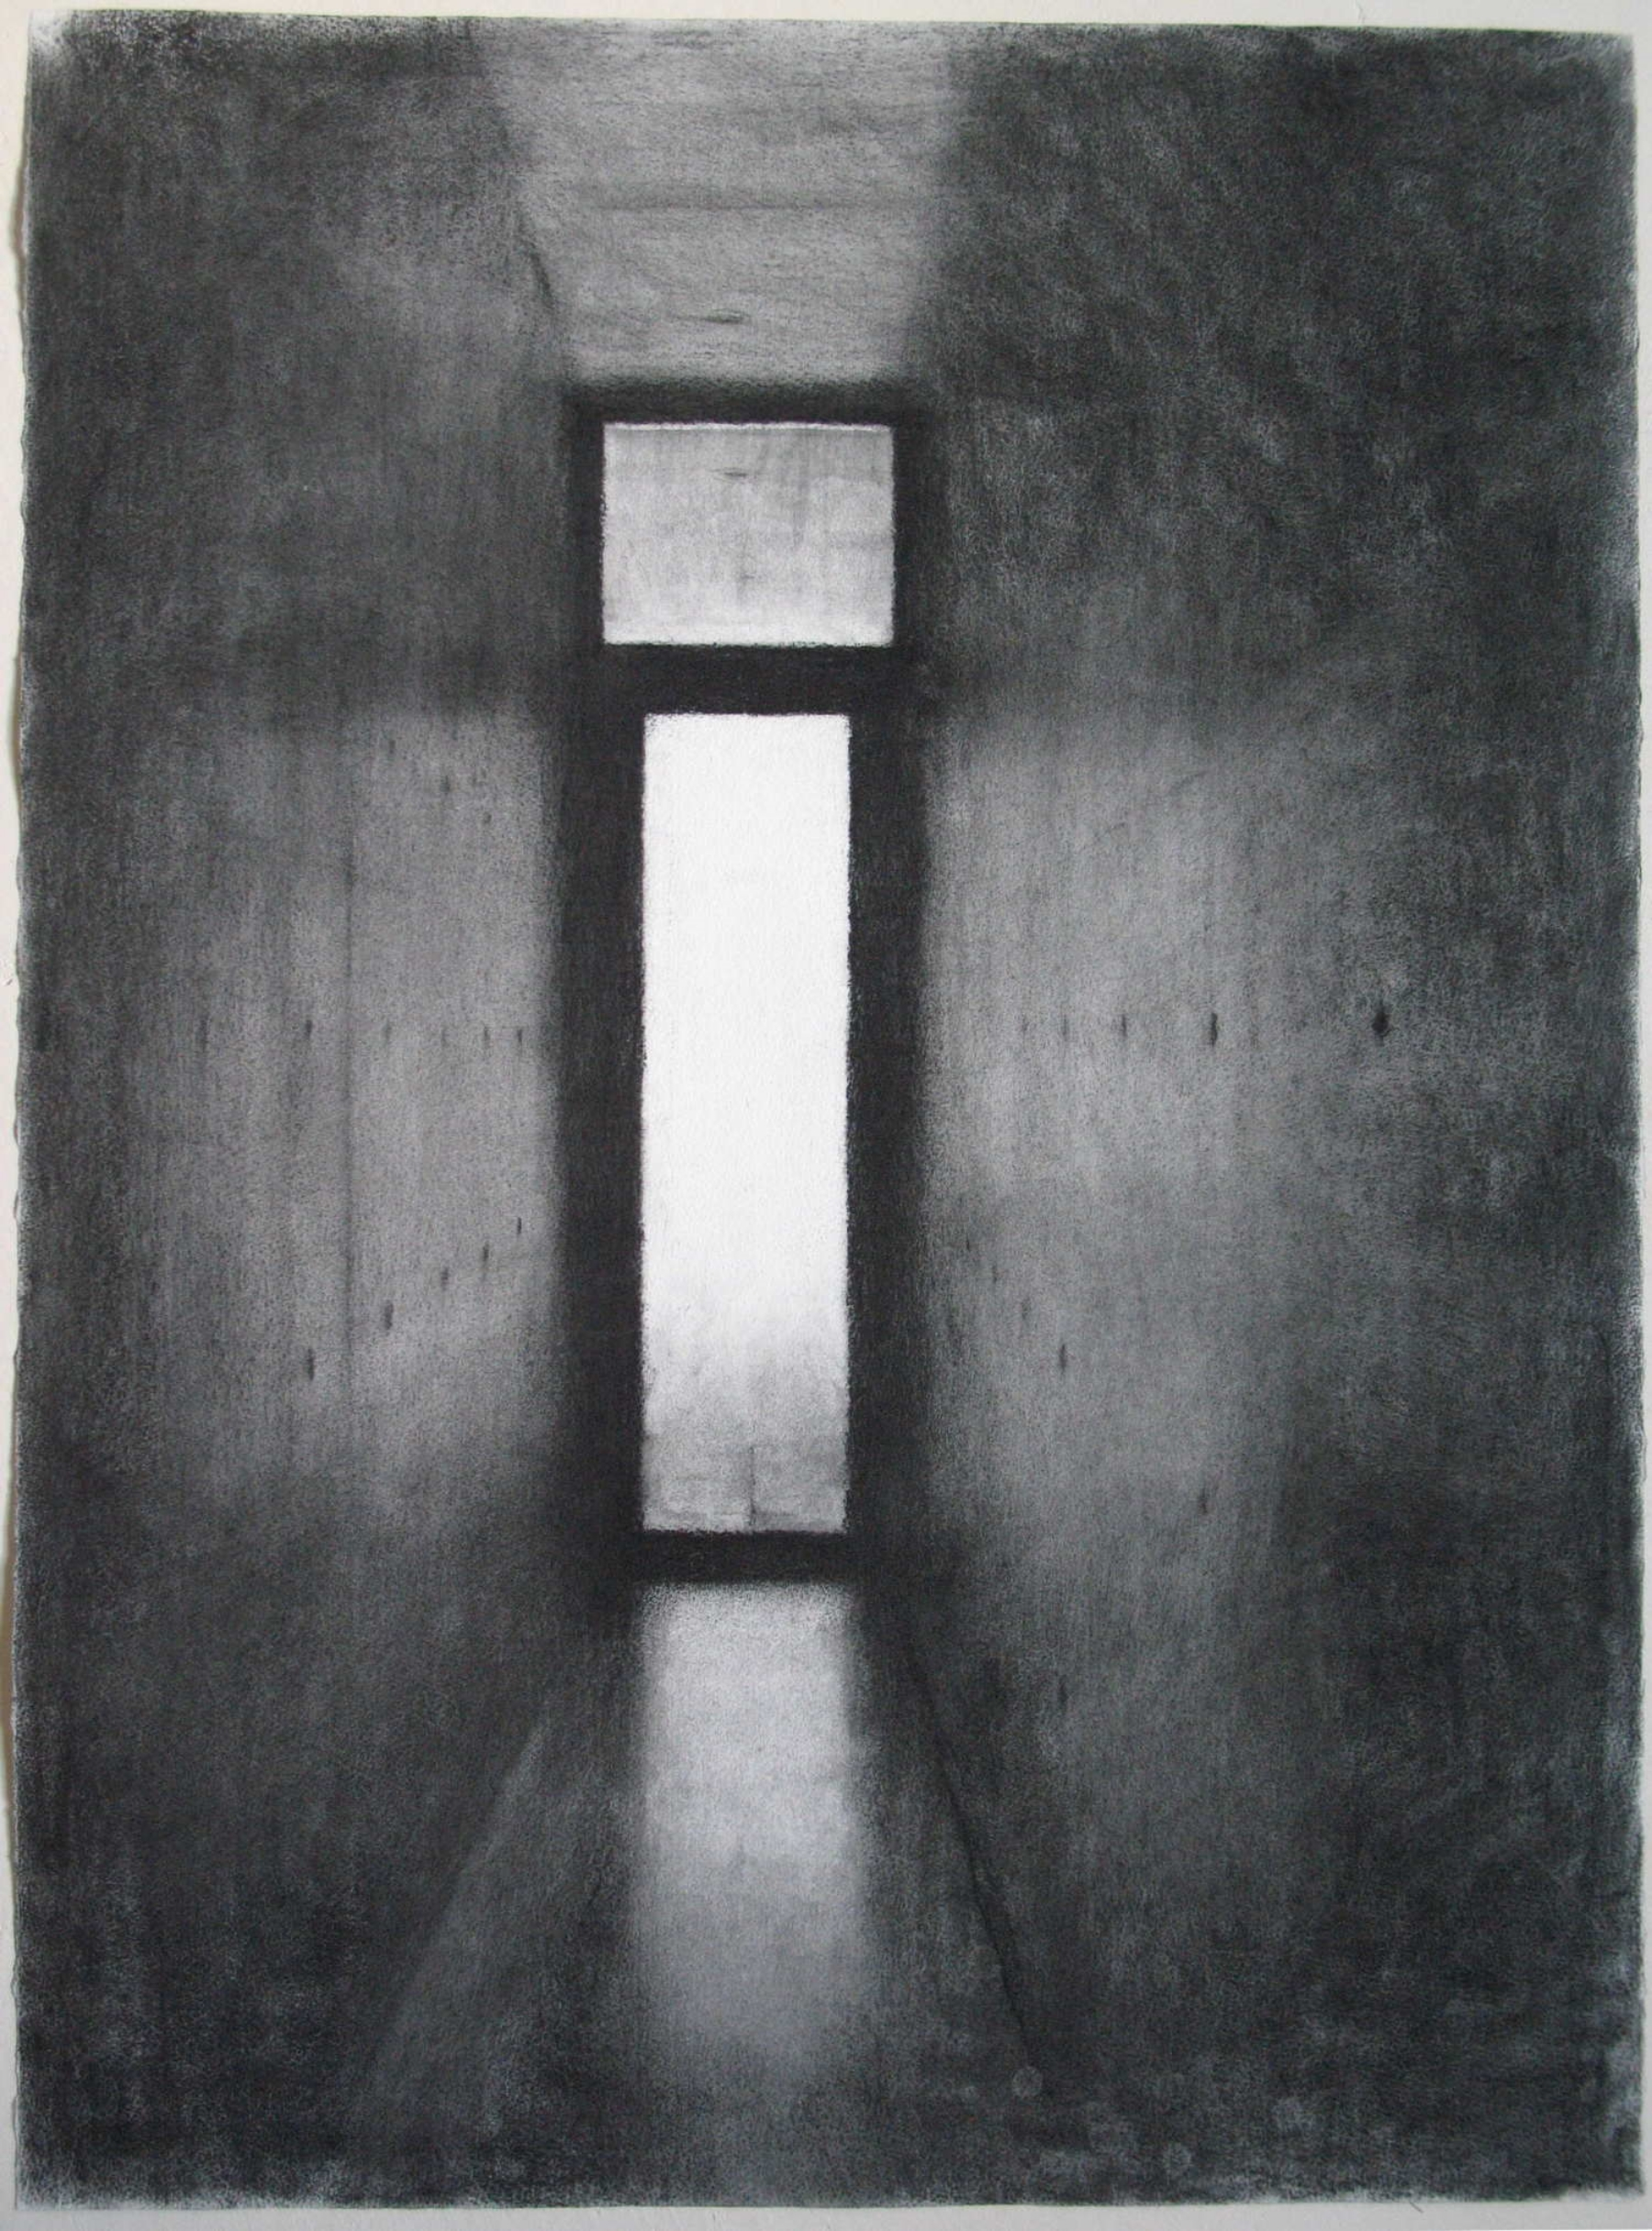 Drawing (Tadao Ando at Vitra I), 2007, willow charcoal on paper, 580 x 750mm.